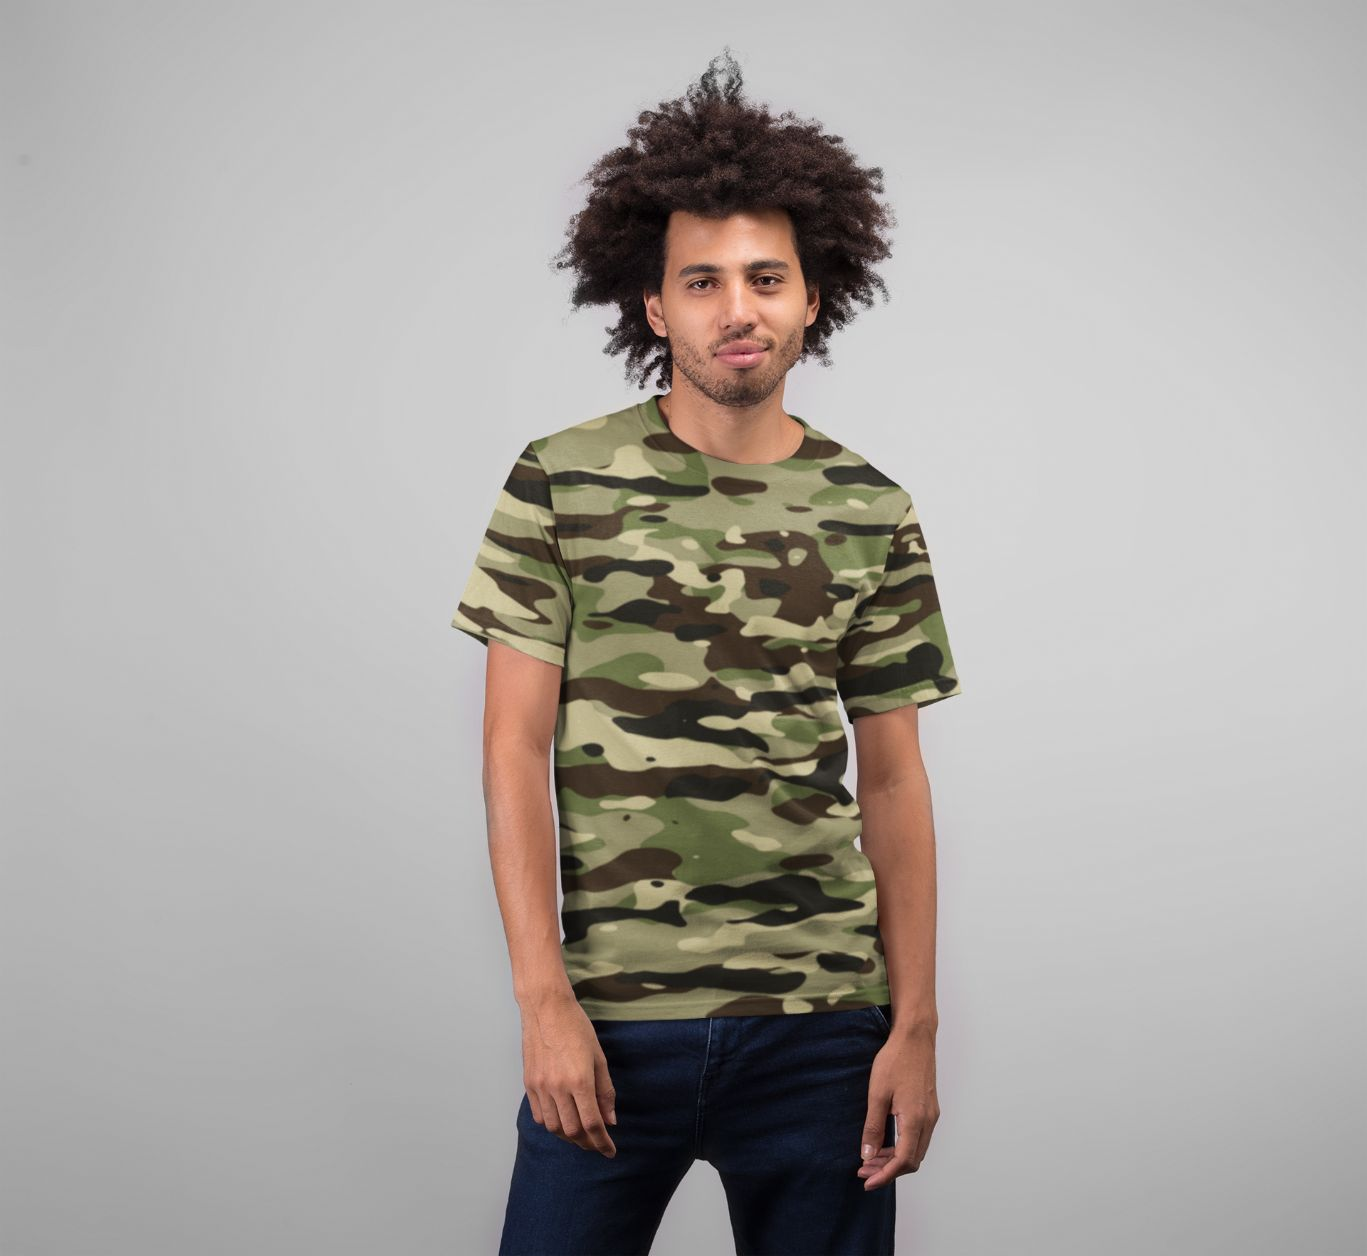 Men's Camouflage Pattern Plakat Premium Sublimation Adult T-Shirt